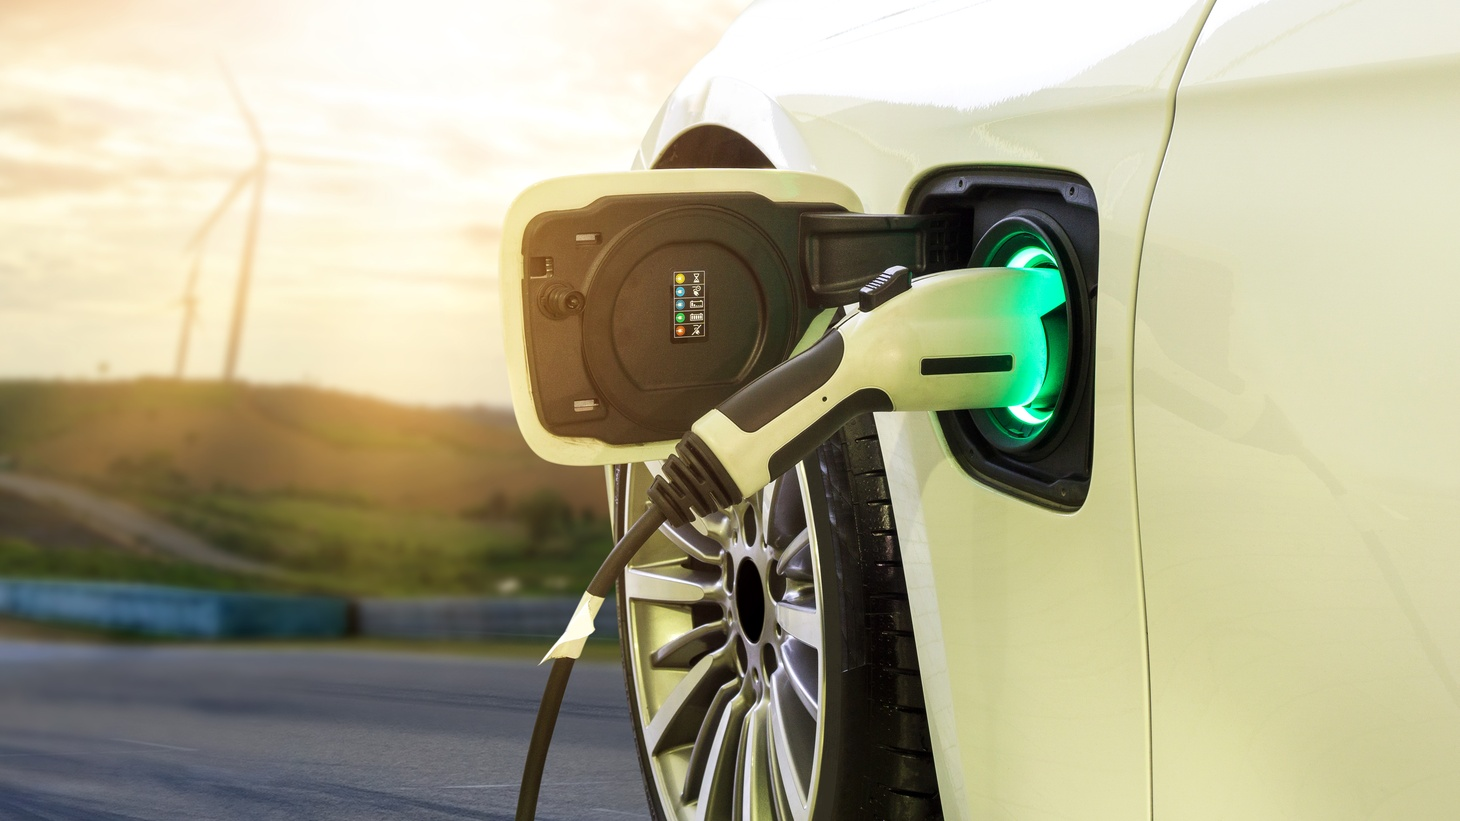 """Government doesn't have to pick winners and losers, but what it does have to do is lay out policy goals and the rules for the marketplace to follow,"" says Mark Hertsgaard. ""Instead of incentivizing more destructive behavior by developing more fossil fuels, we incentivize more helpful behavior: making it easier to purchase electric vehicles, for example, or even more importantly, to get to a place where you don't need a vehicle to get around in the first place."""